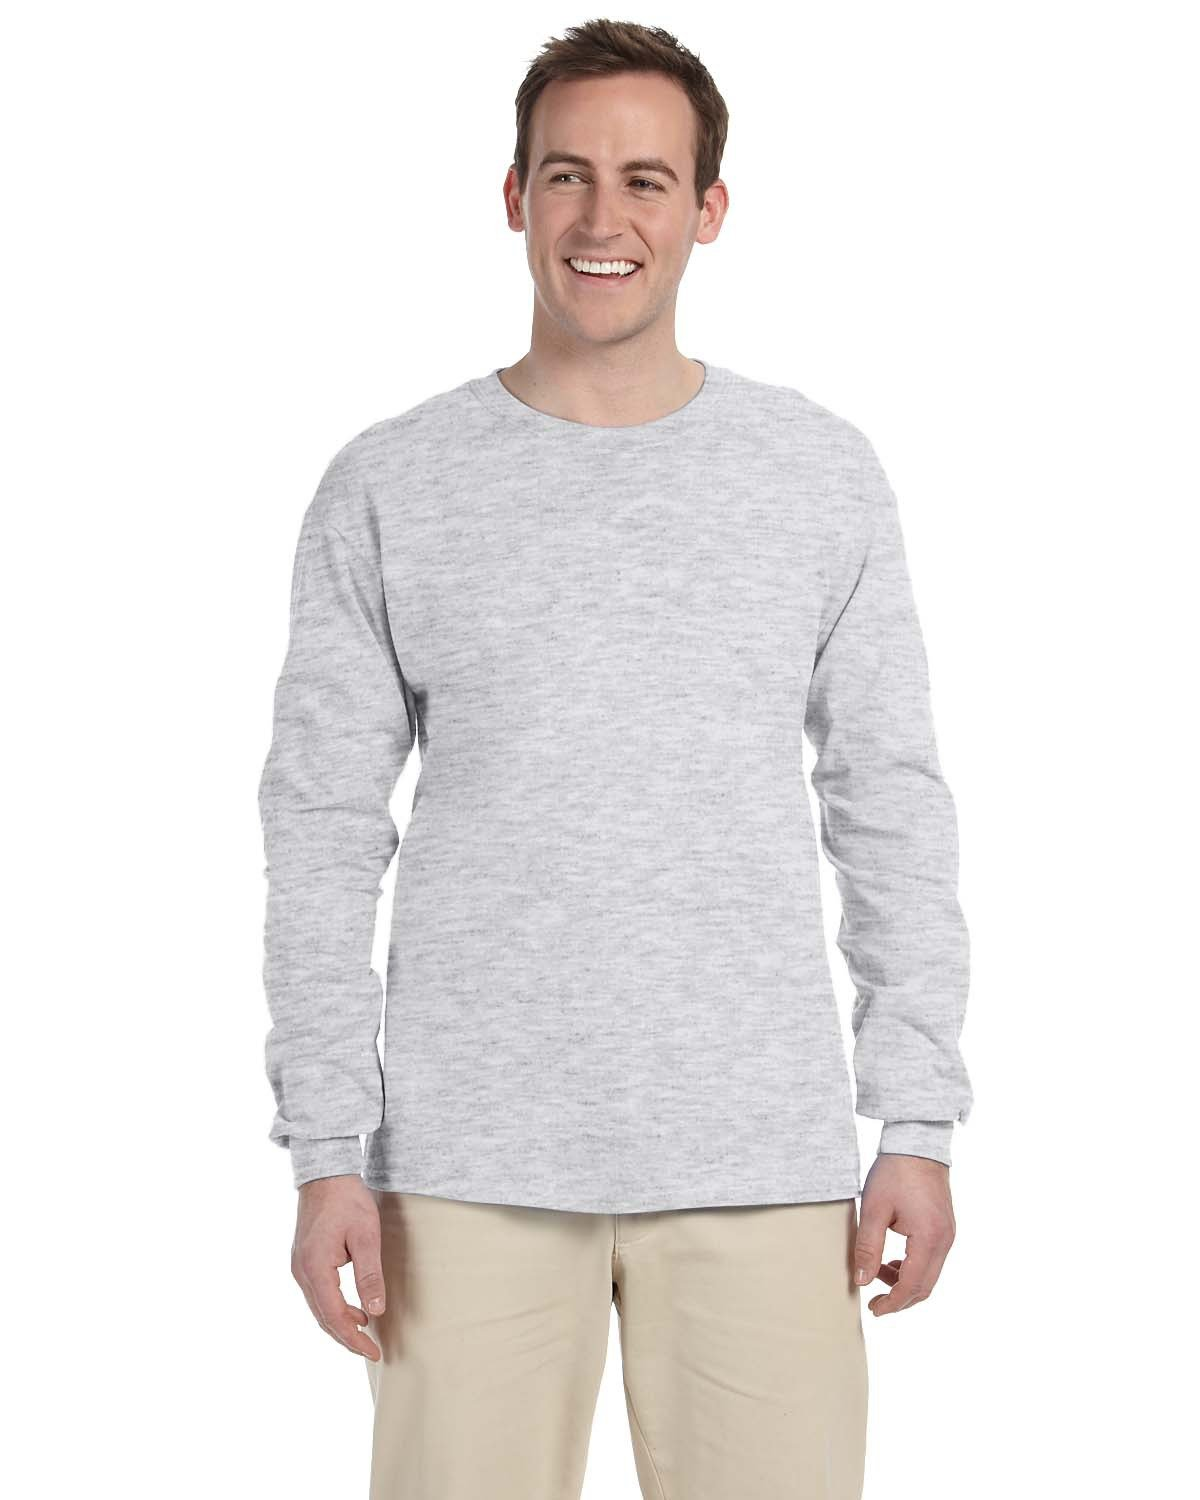 Gildan - G240 - Adult Ultra Cotton® 6 oz. Long-Sleeve T-Shirt